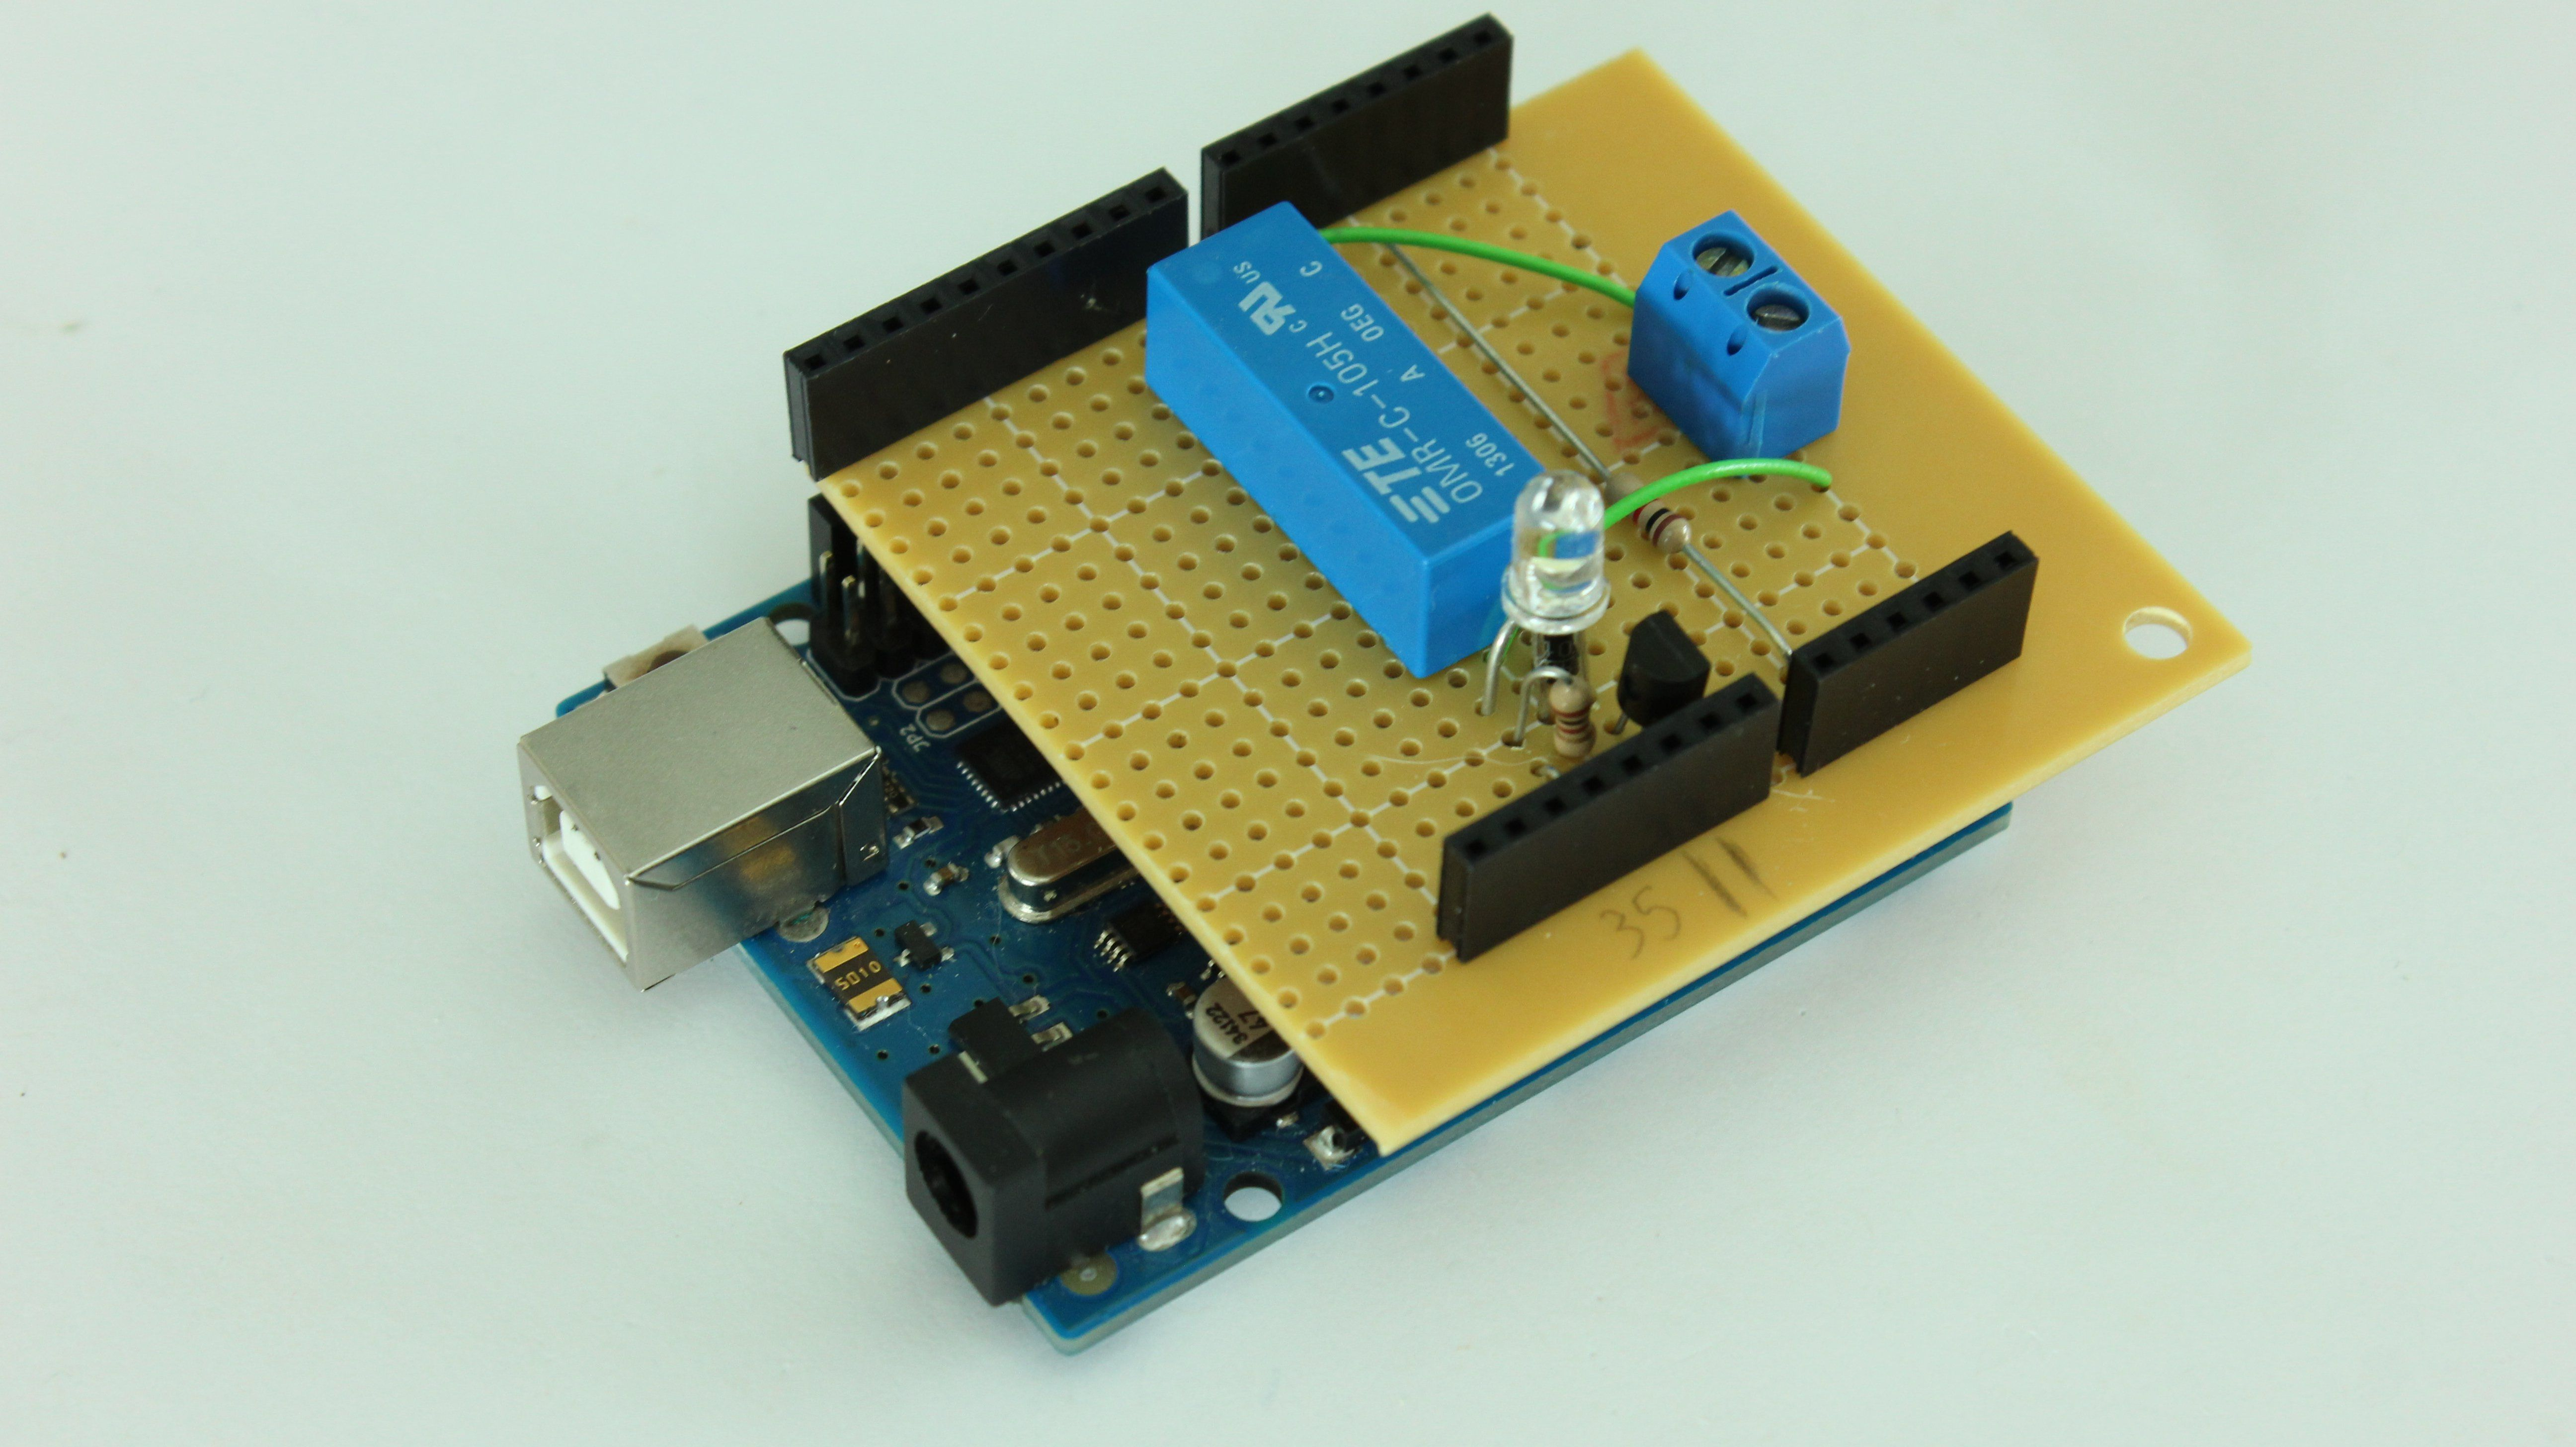 How To Make Custom Shields For A Microcontroller Board Arduino Isp In System Programming And Standalone Circuits Open Are Great Connecting External Your This Project